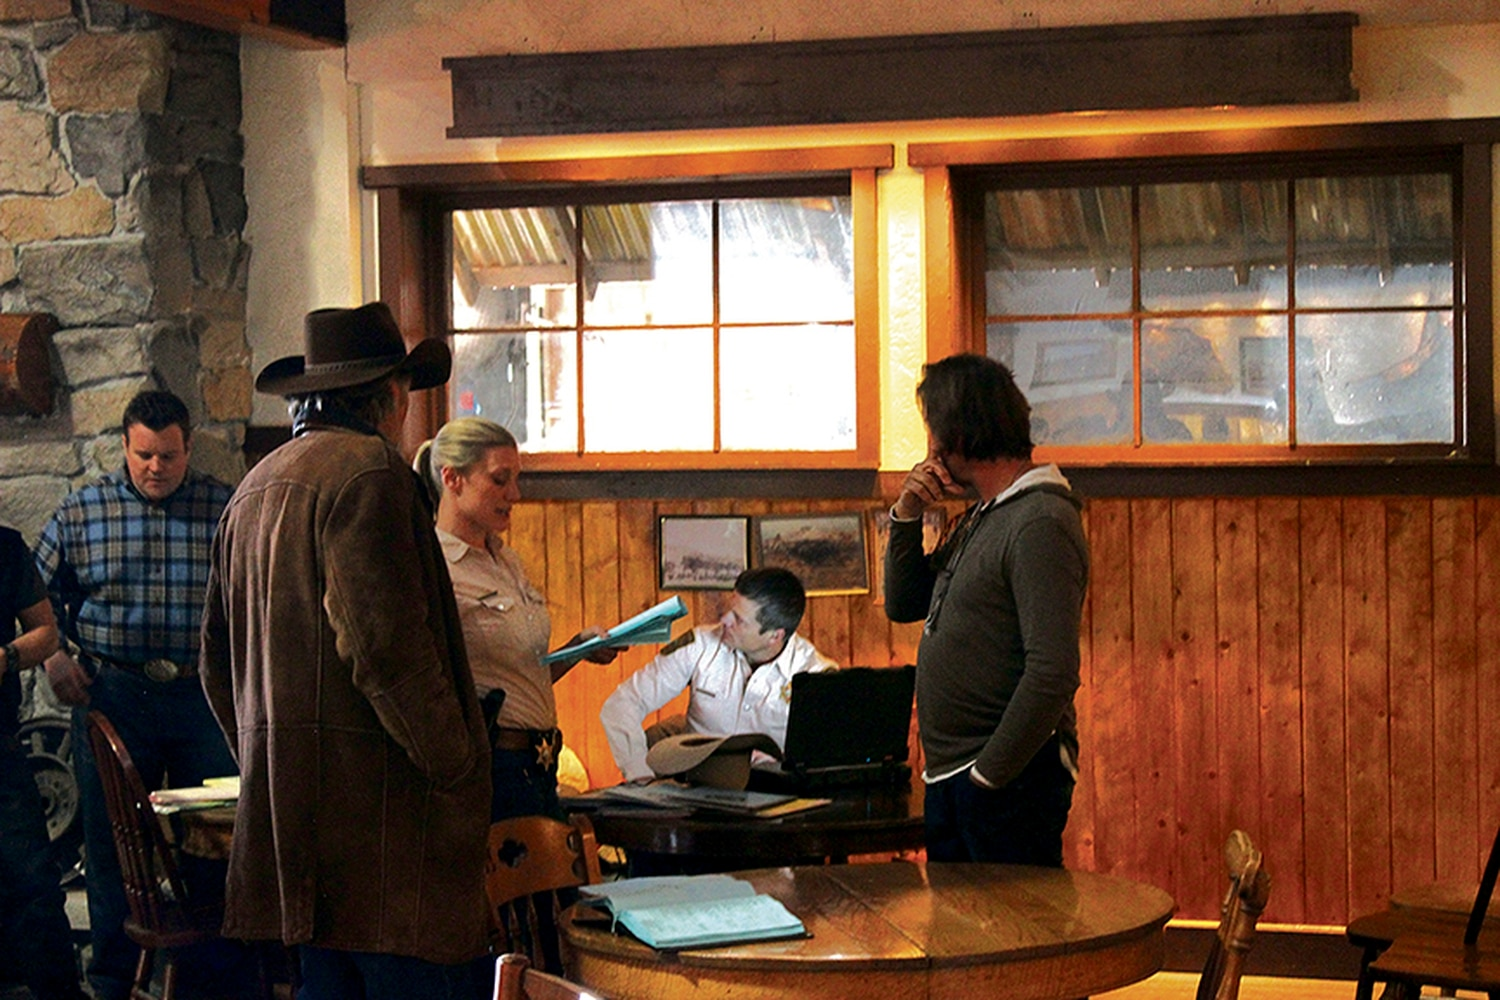 The posse: Walt Longmire and his deputies get ready to shoot a scene.